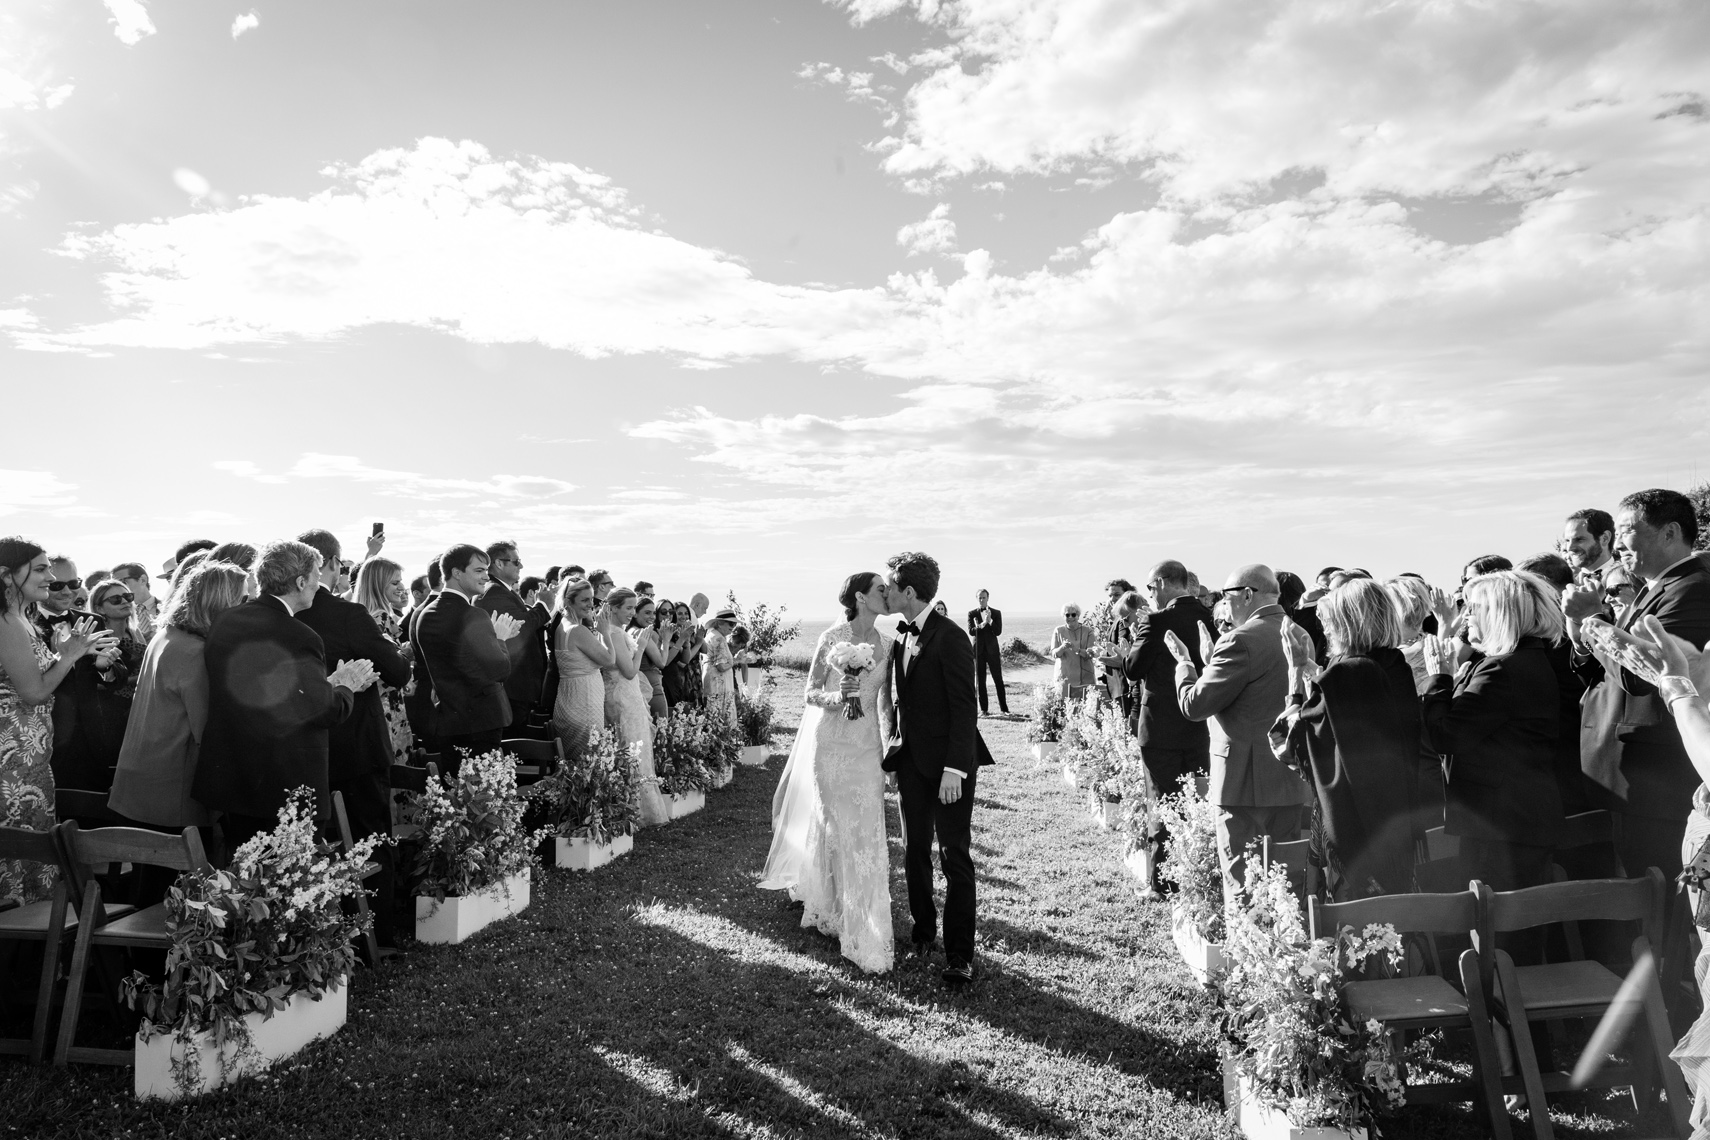 Kontokosta Winery Weddings Greenport NY sarma and co